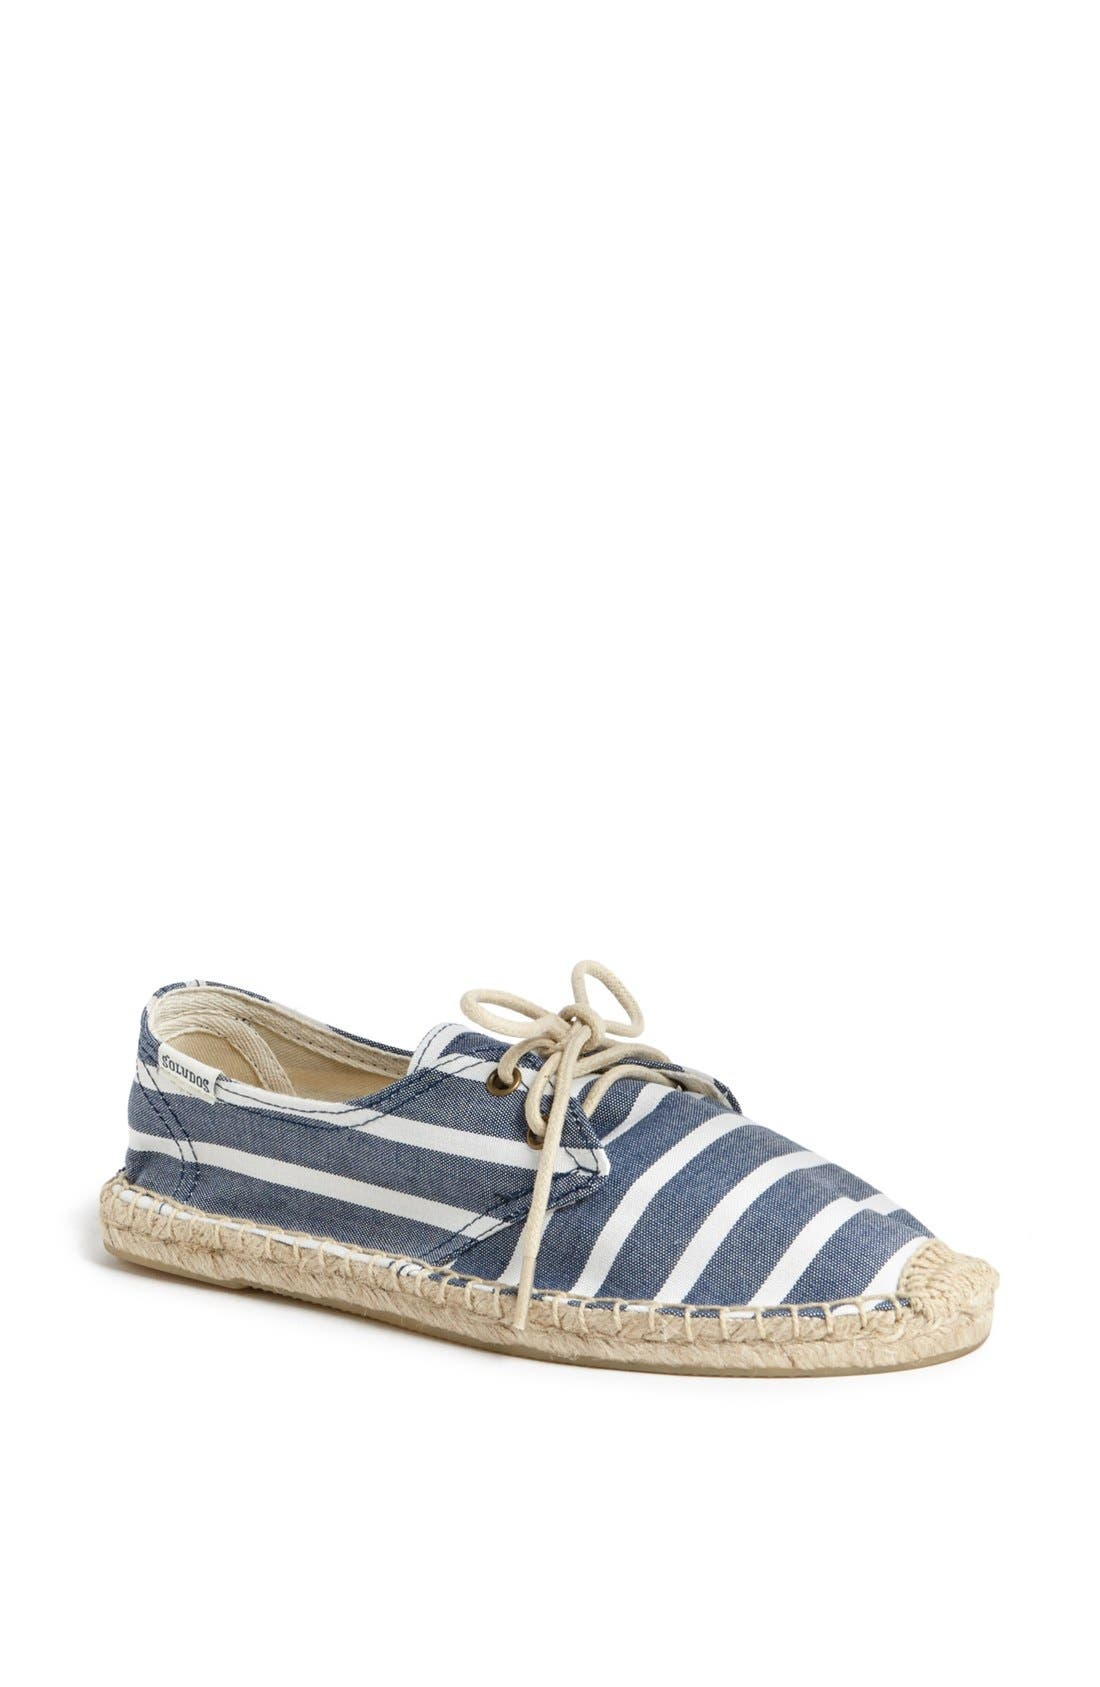 Main Image - Soludos 'Derby - Classic Stripe' Espadrille Sneaker (Women)